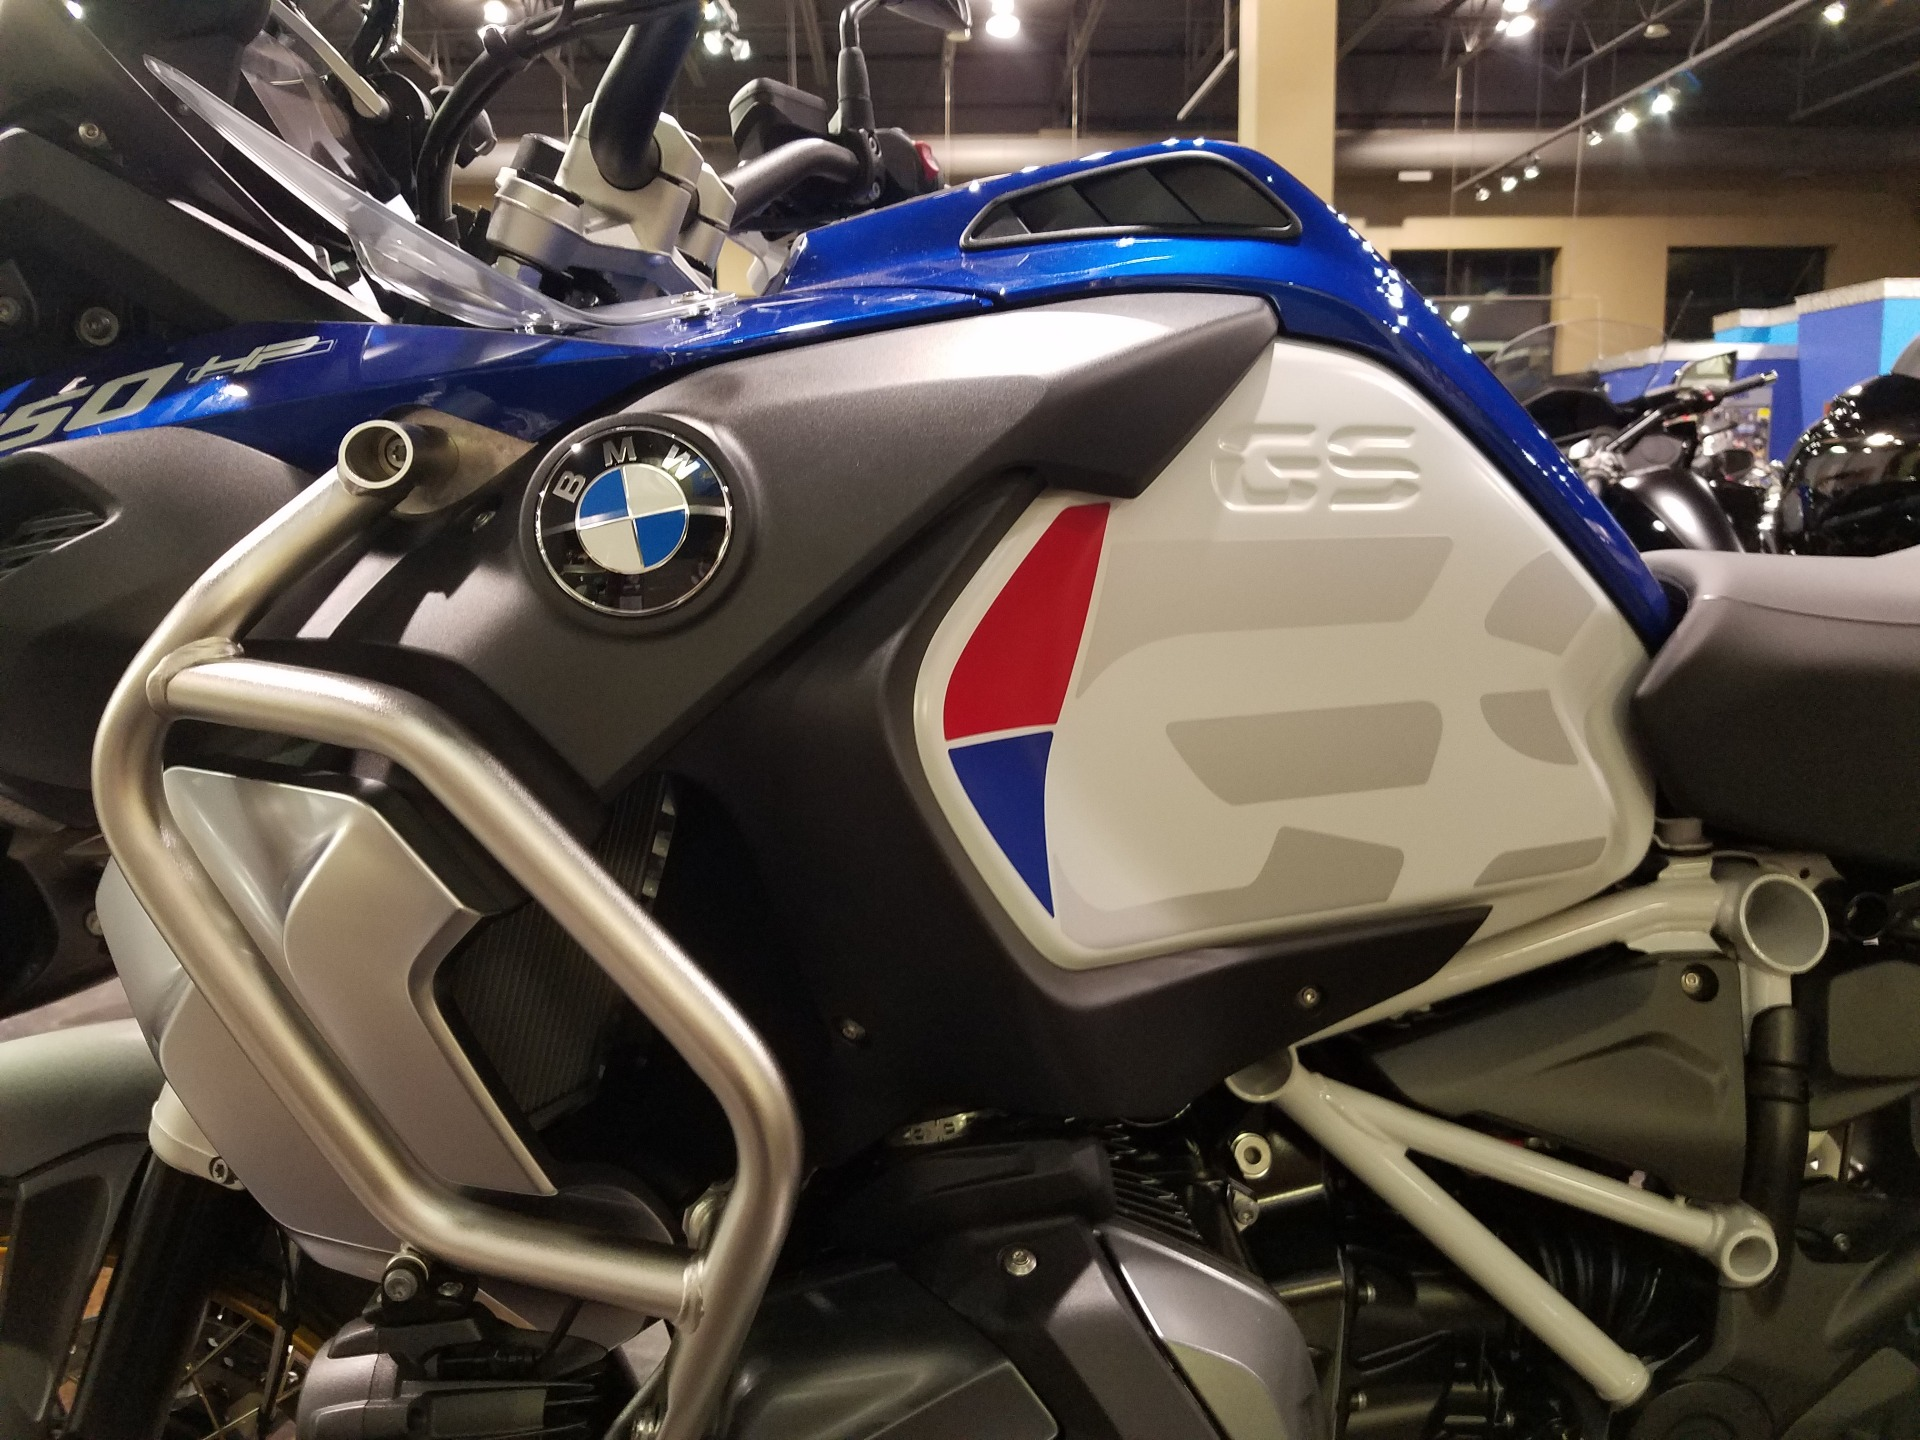 2019 BMW R1250GS WHITE/RACINGBLUE/RED in Saint Charles, Illinois